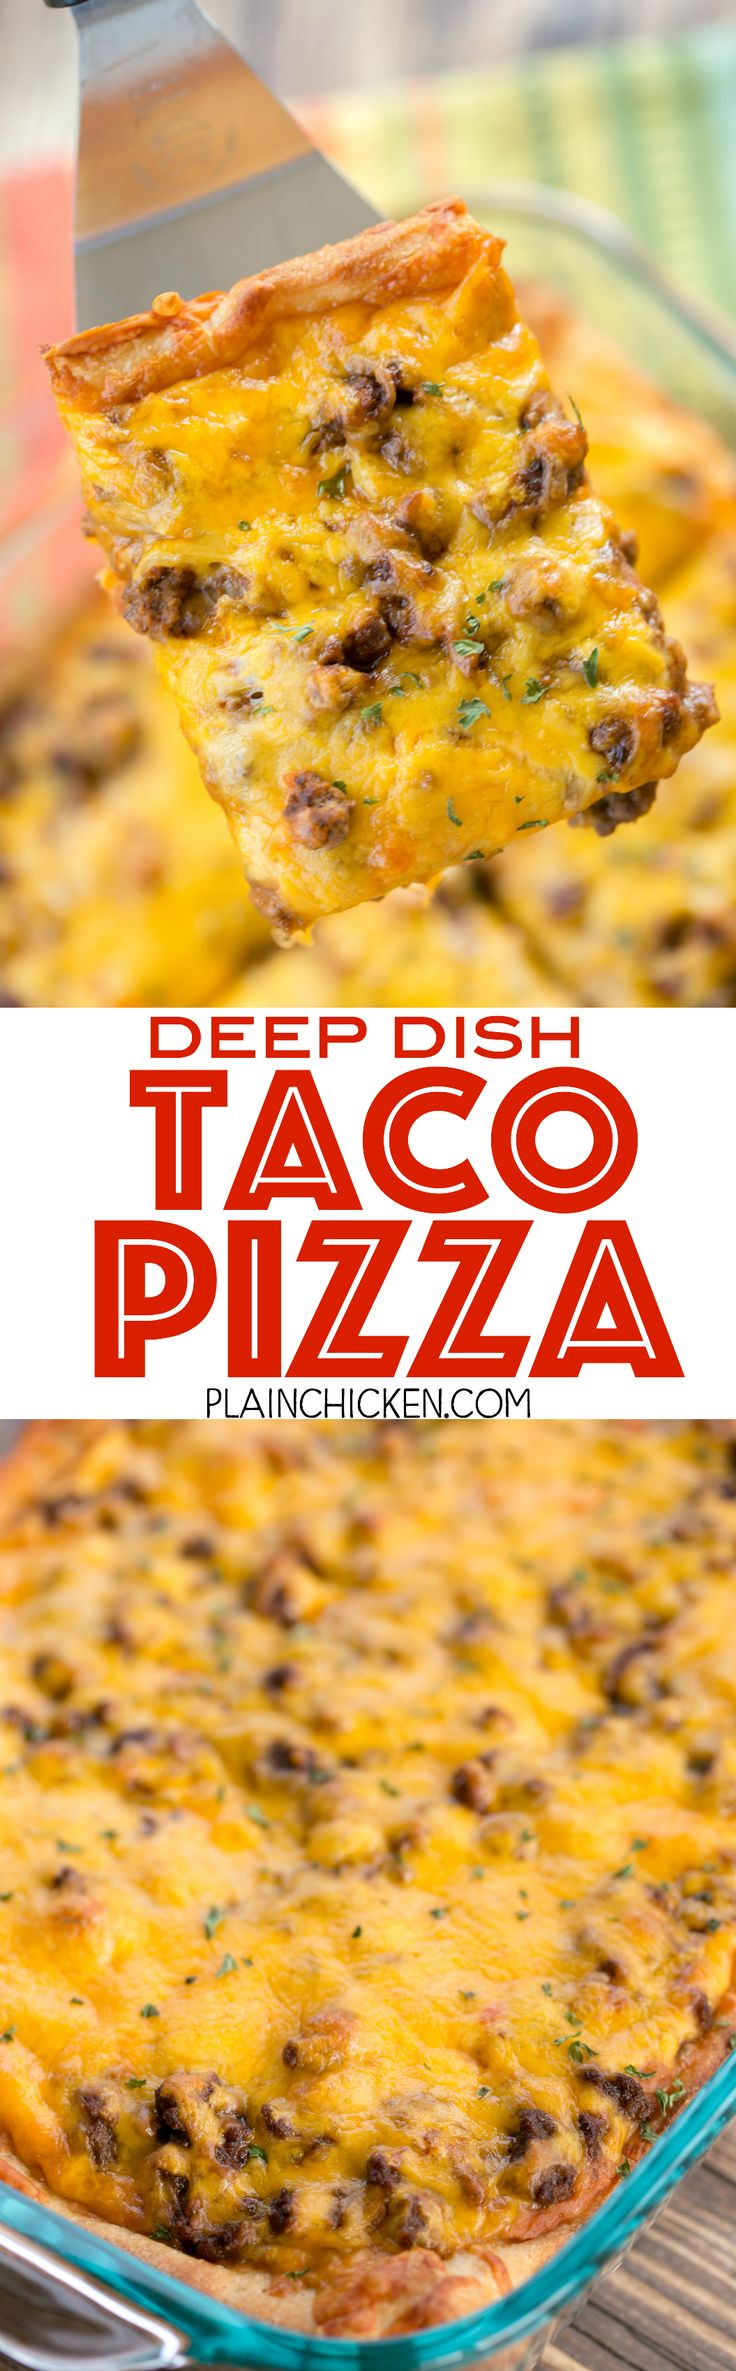 Deep Dish Taco Pizza - seriously delicious!! A fun twist to taco night. Refrigerated pizza crust topped with refried beans, taco sauce, taco hamburger meat and cheese. Top pizza with your favorite taco toppings!! Everyone loved this pizza and asked to have it again this week! Such an easy weeknight dinner recipe! Pizza plus Tacos equals HEAVEN!!!